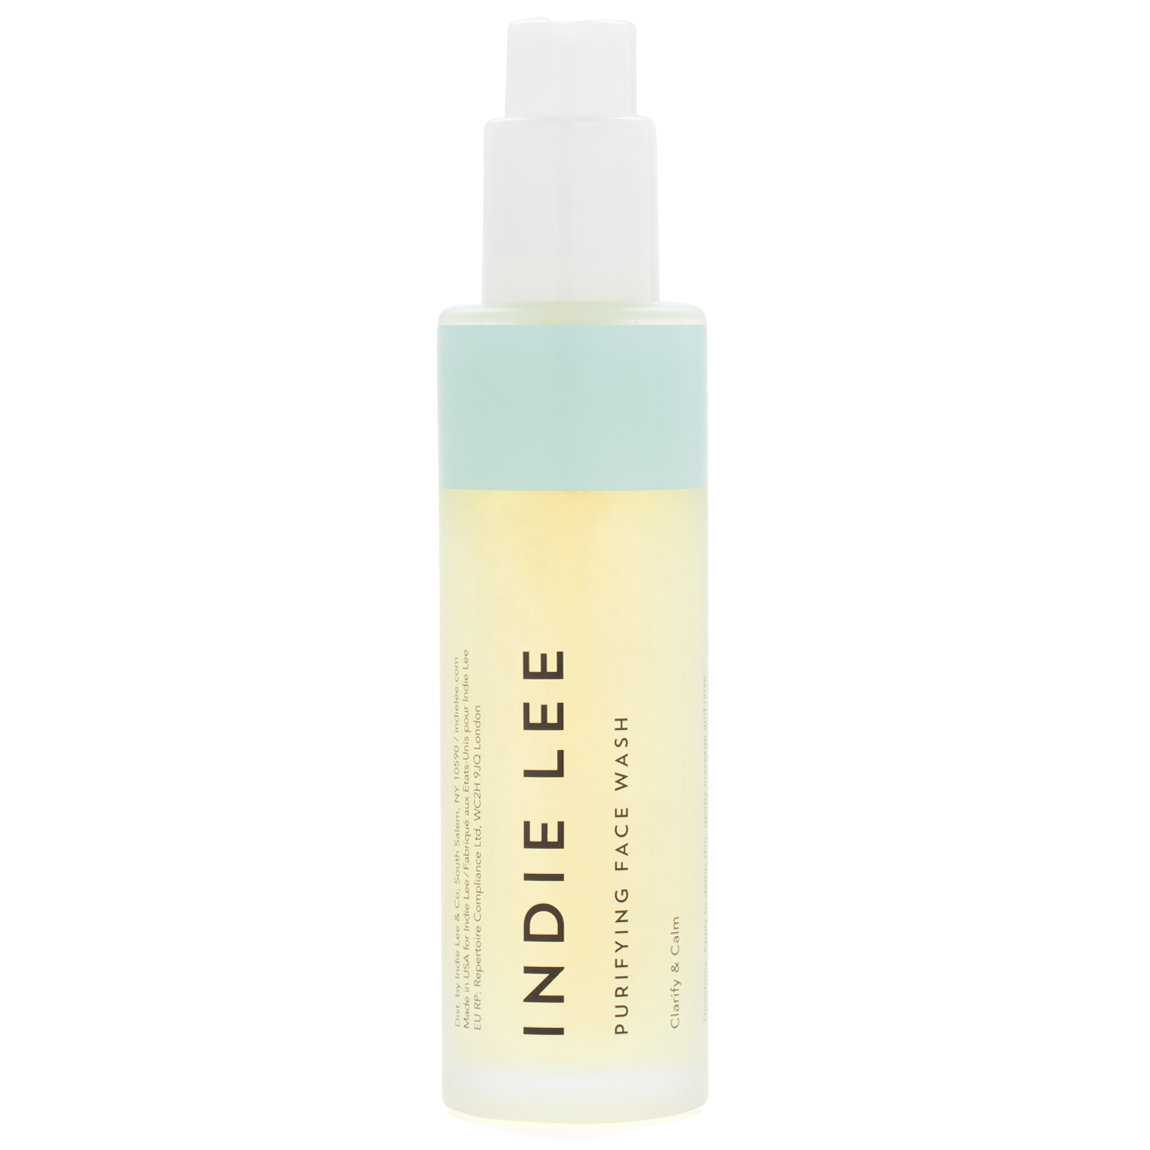 Indie Lee Purifying Face Wash 125 ml alternative view 1 - product swatch.